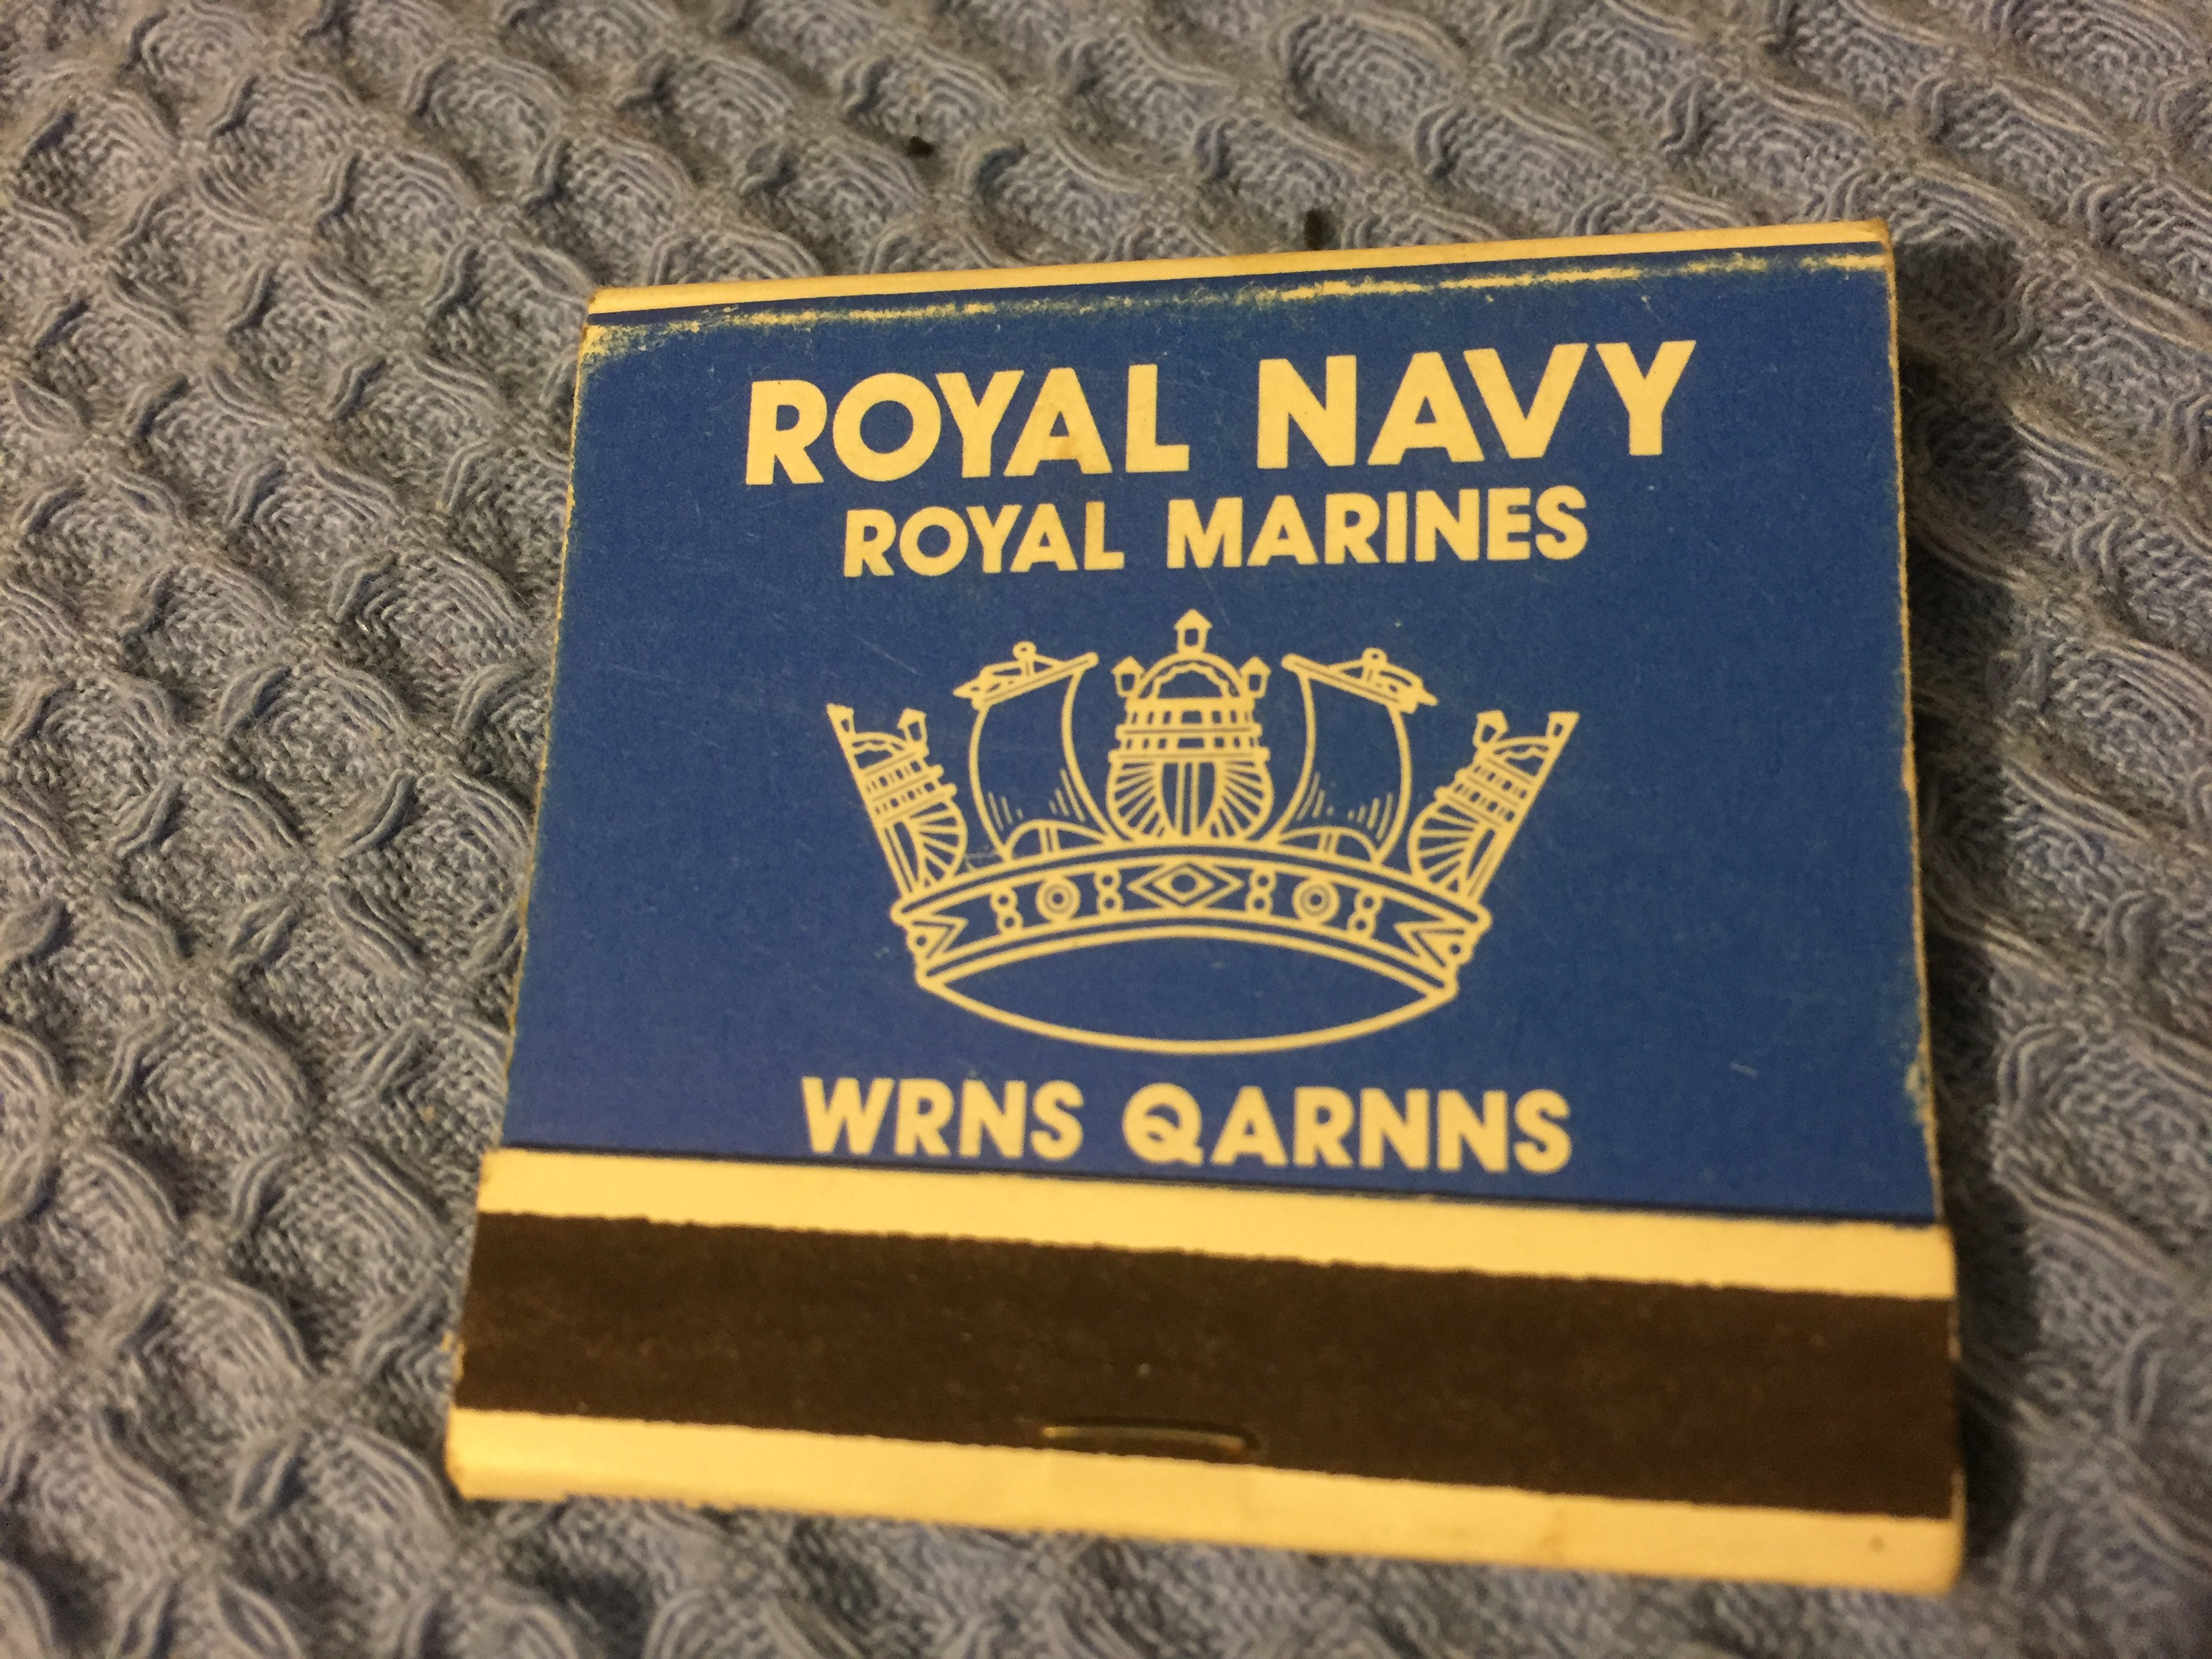 VERY EARLY UNUSED FLAT PACK BOX OF MATCHES FROM THE ROYAL NAVY